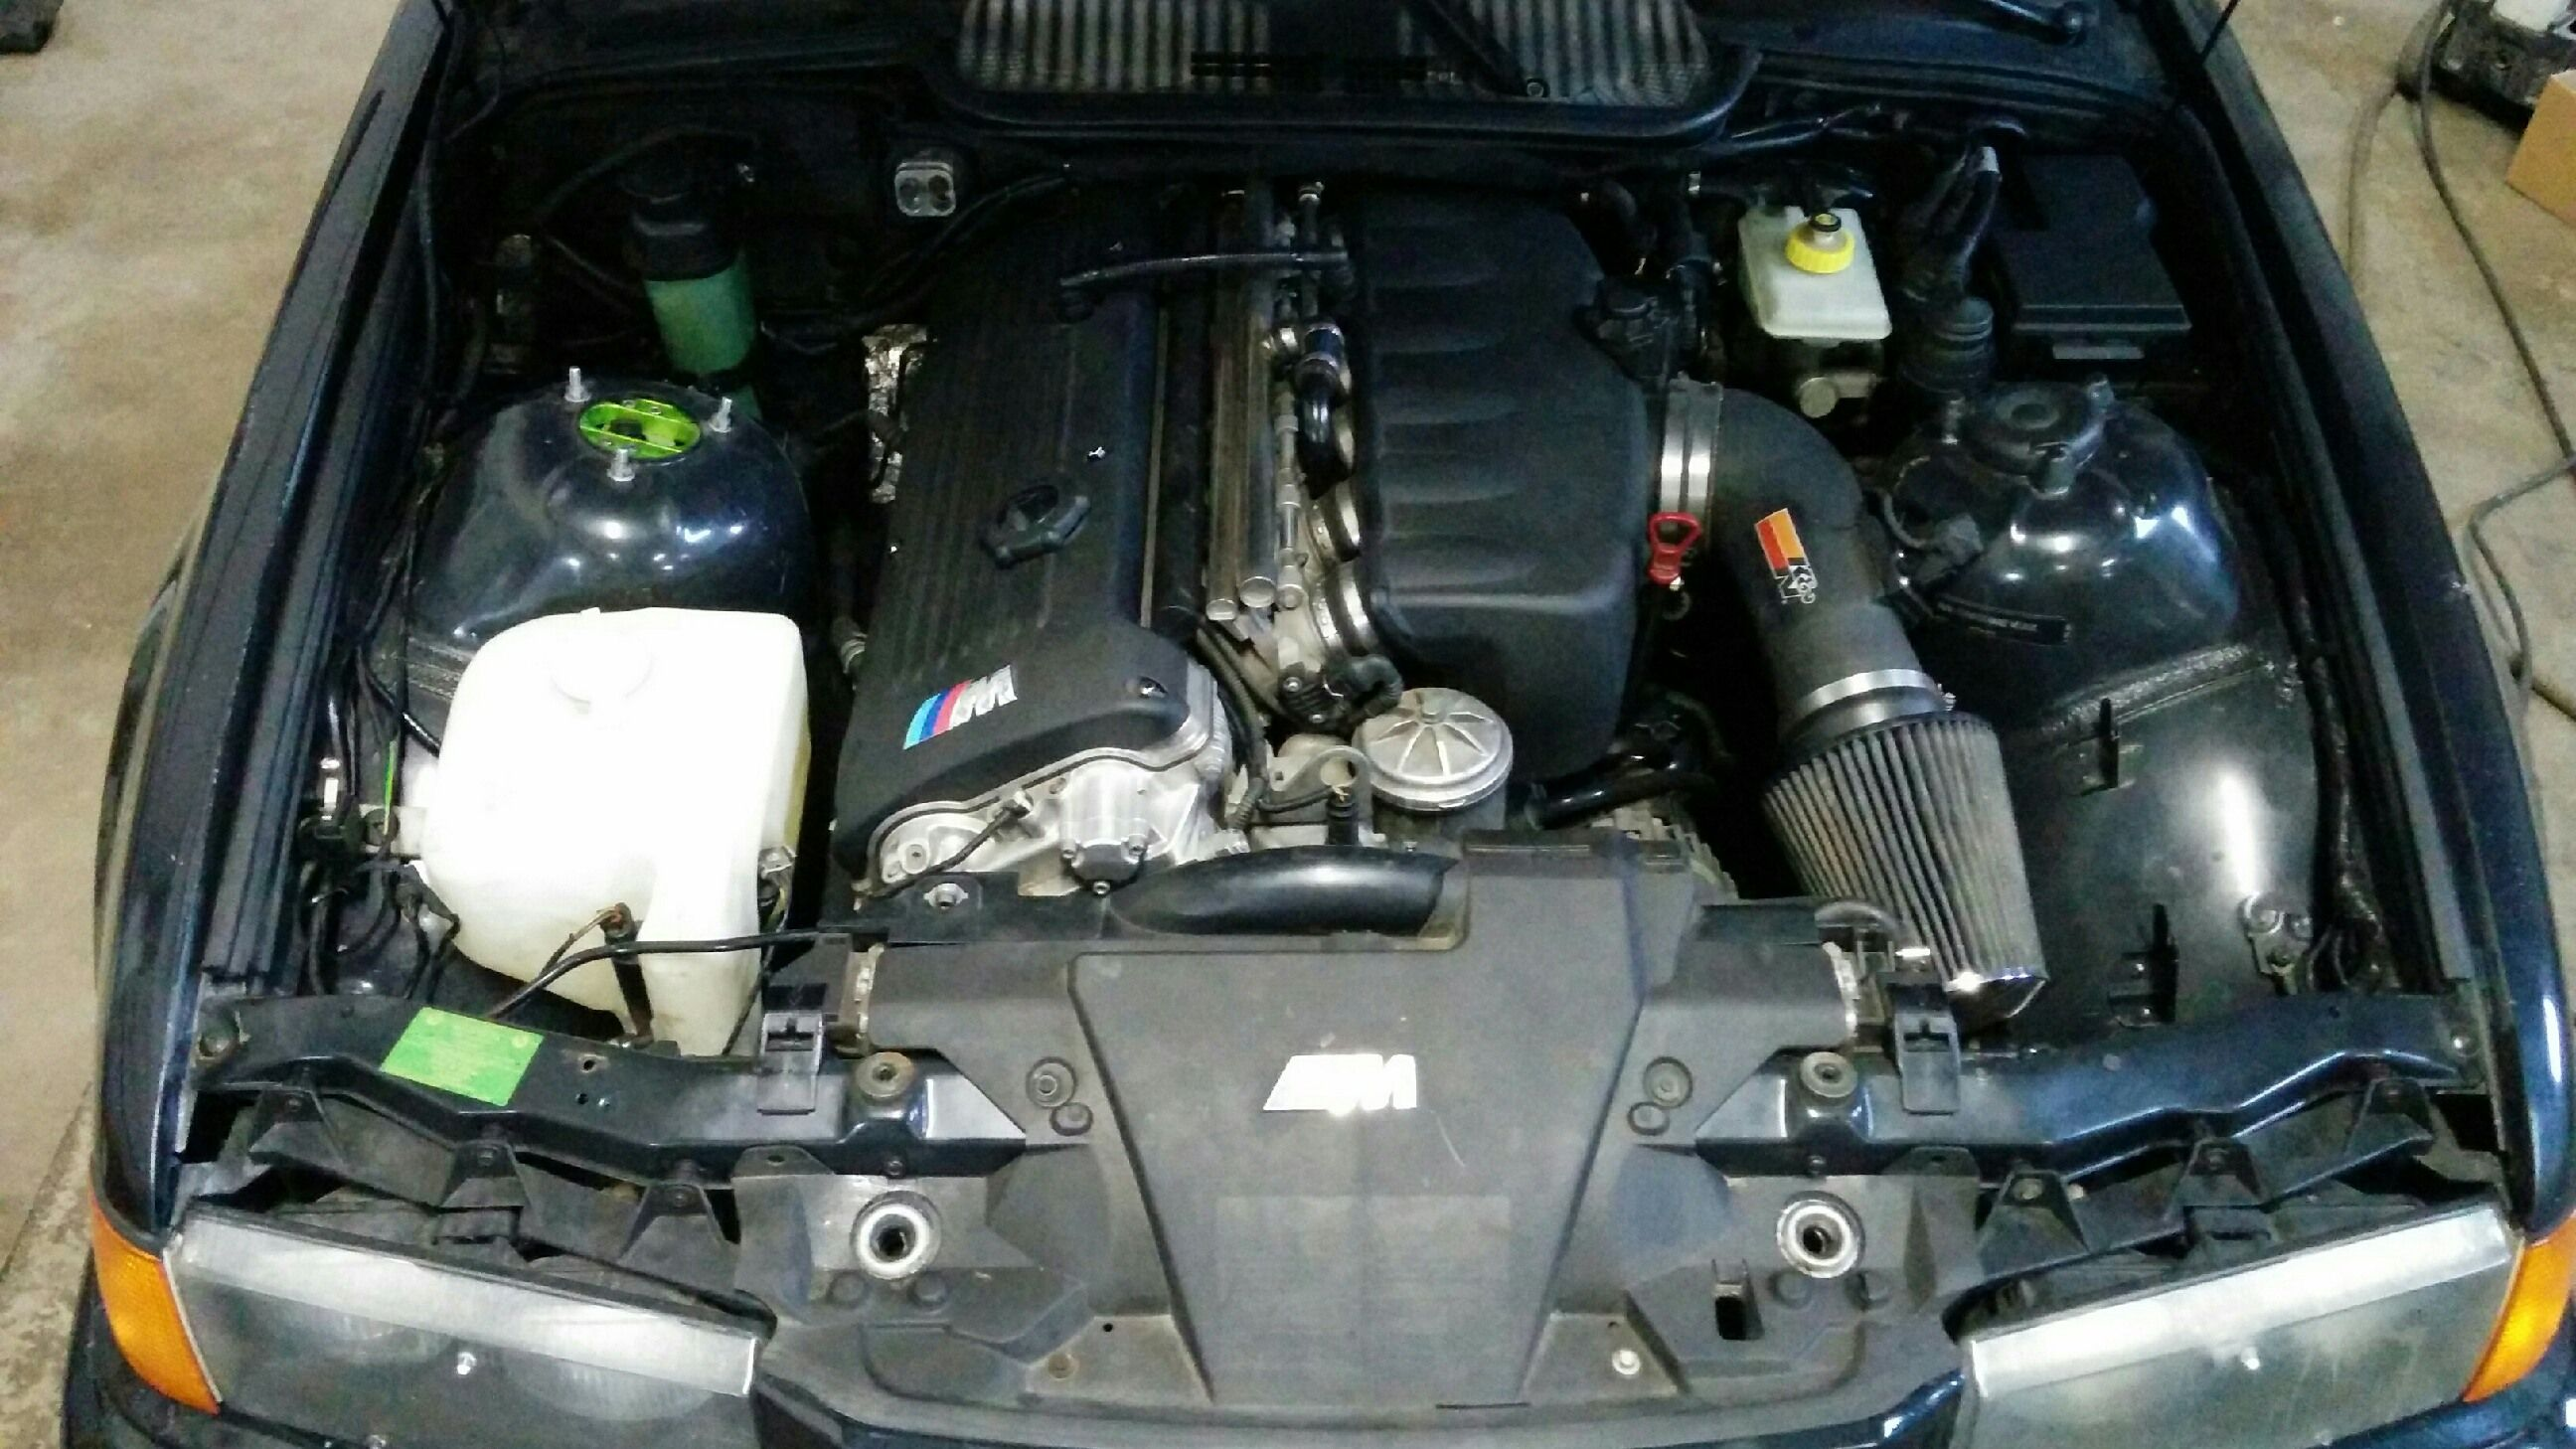 cam engine bay s54 swapped e36 m3 total motor werkes